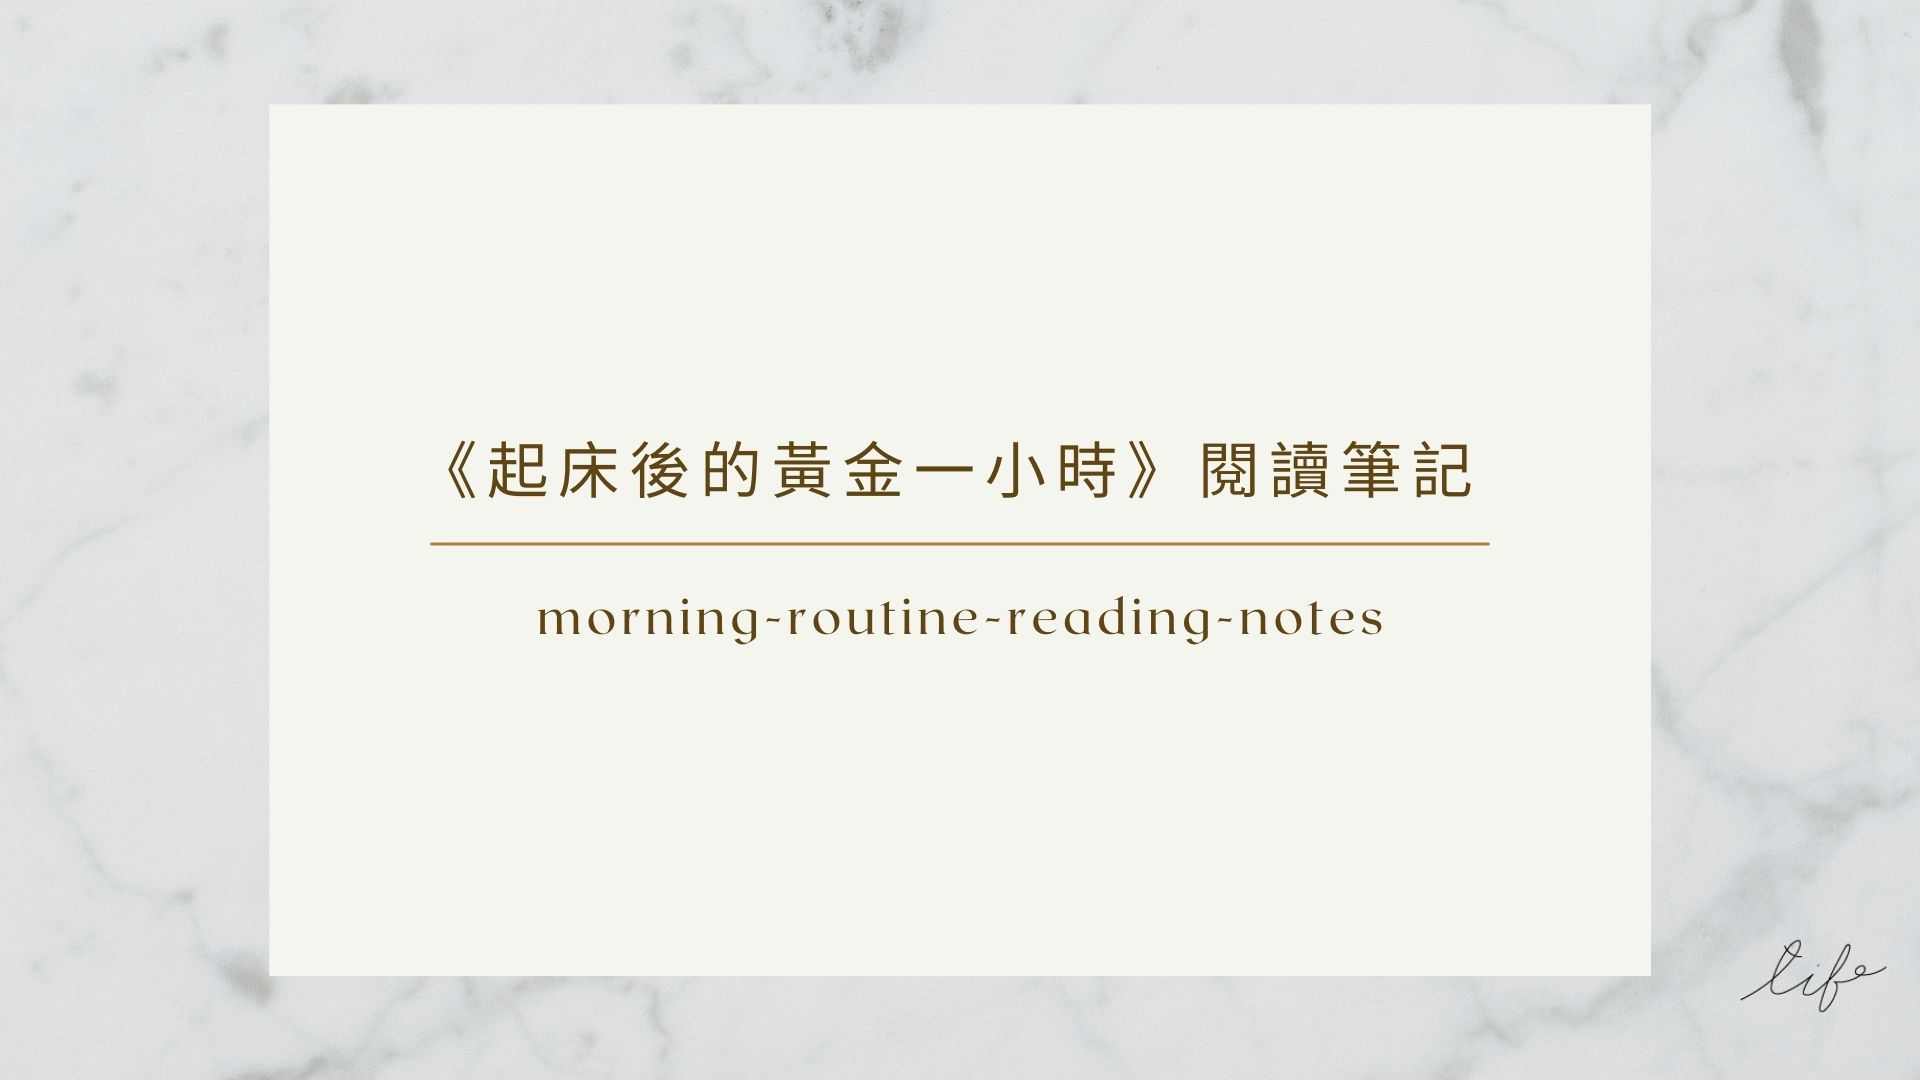 morning-routine-reading-notes